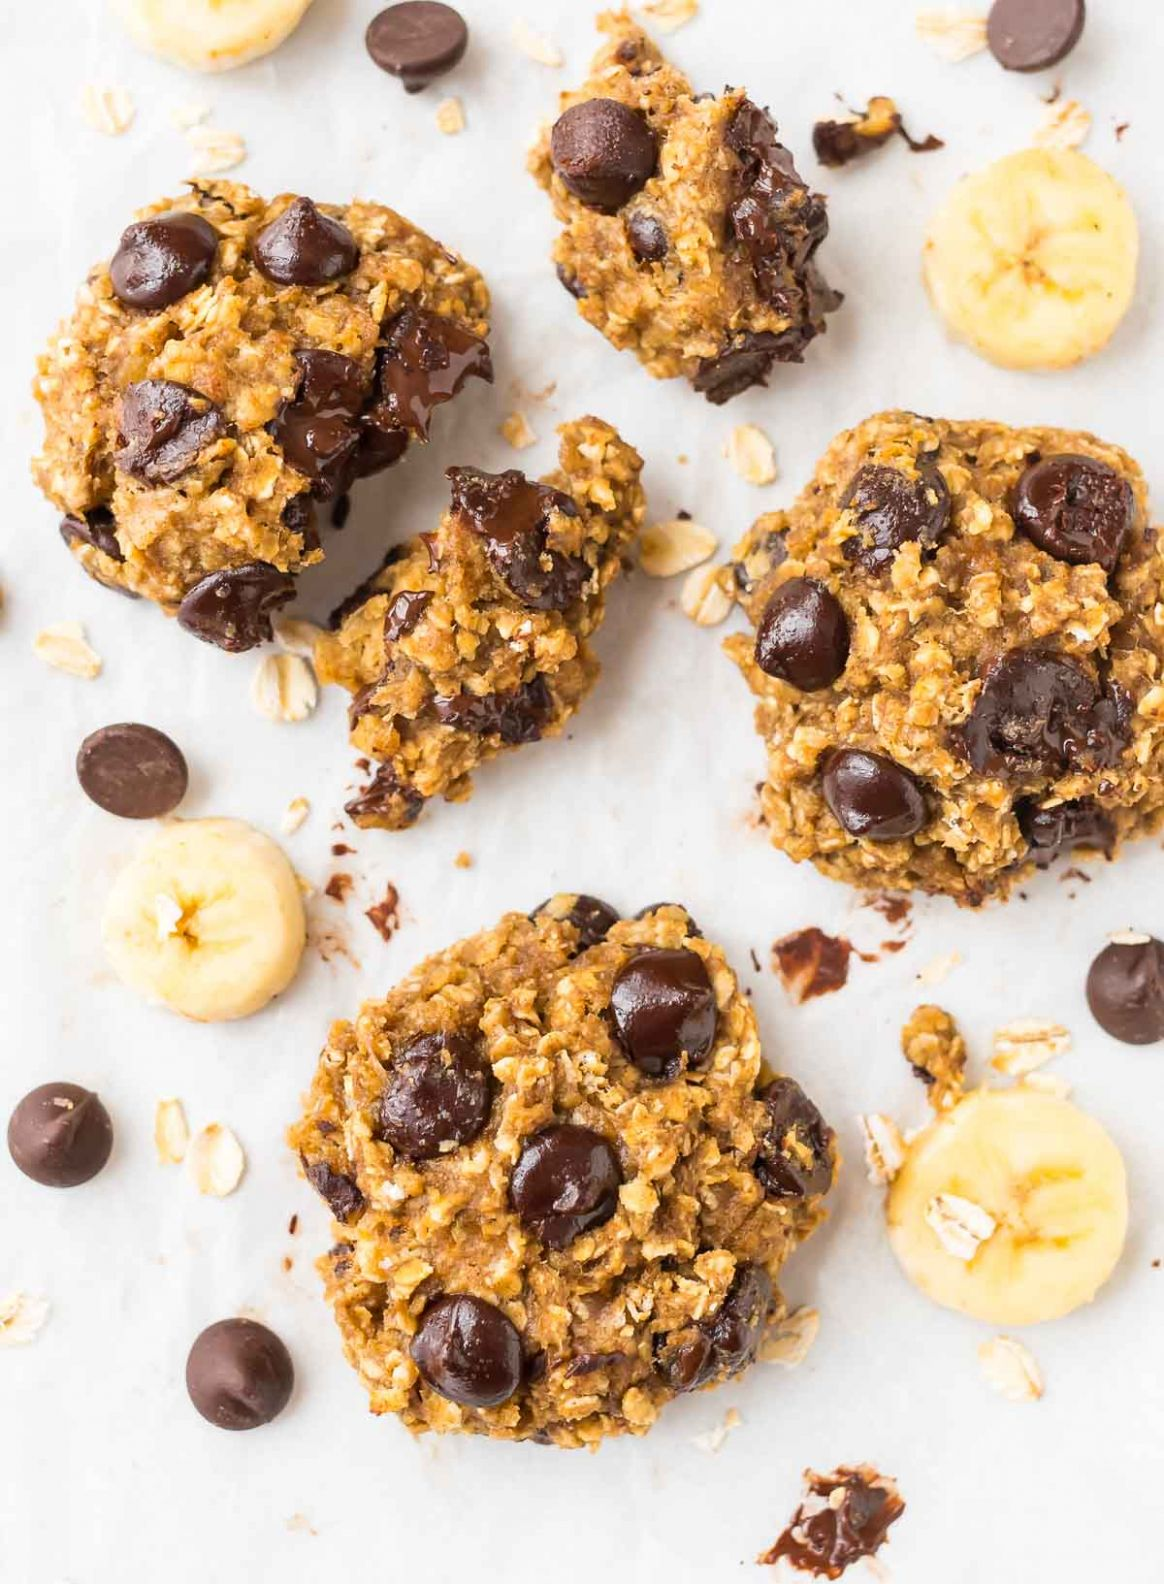 Banana Oatmeal Cookies with Chocolate Chips - Healthy Recipes With Bananas